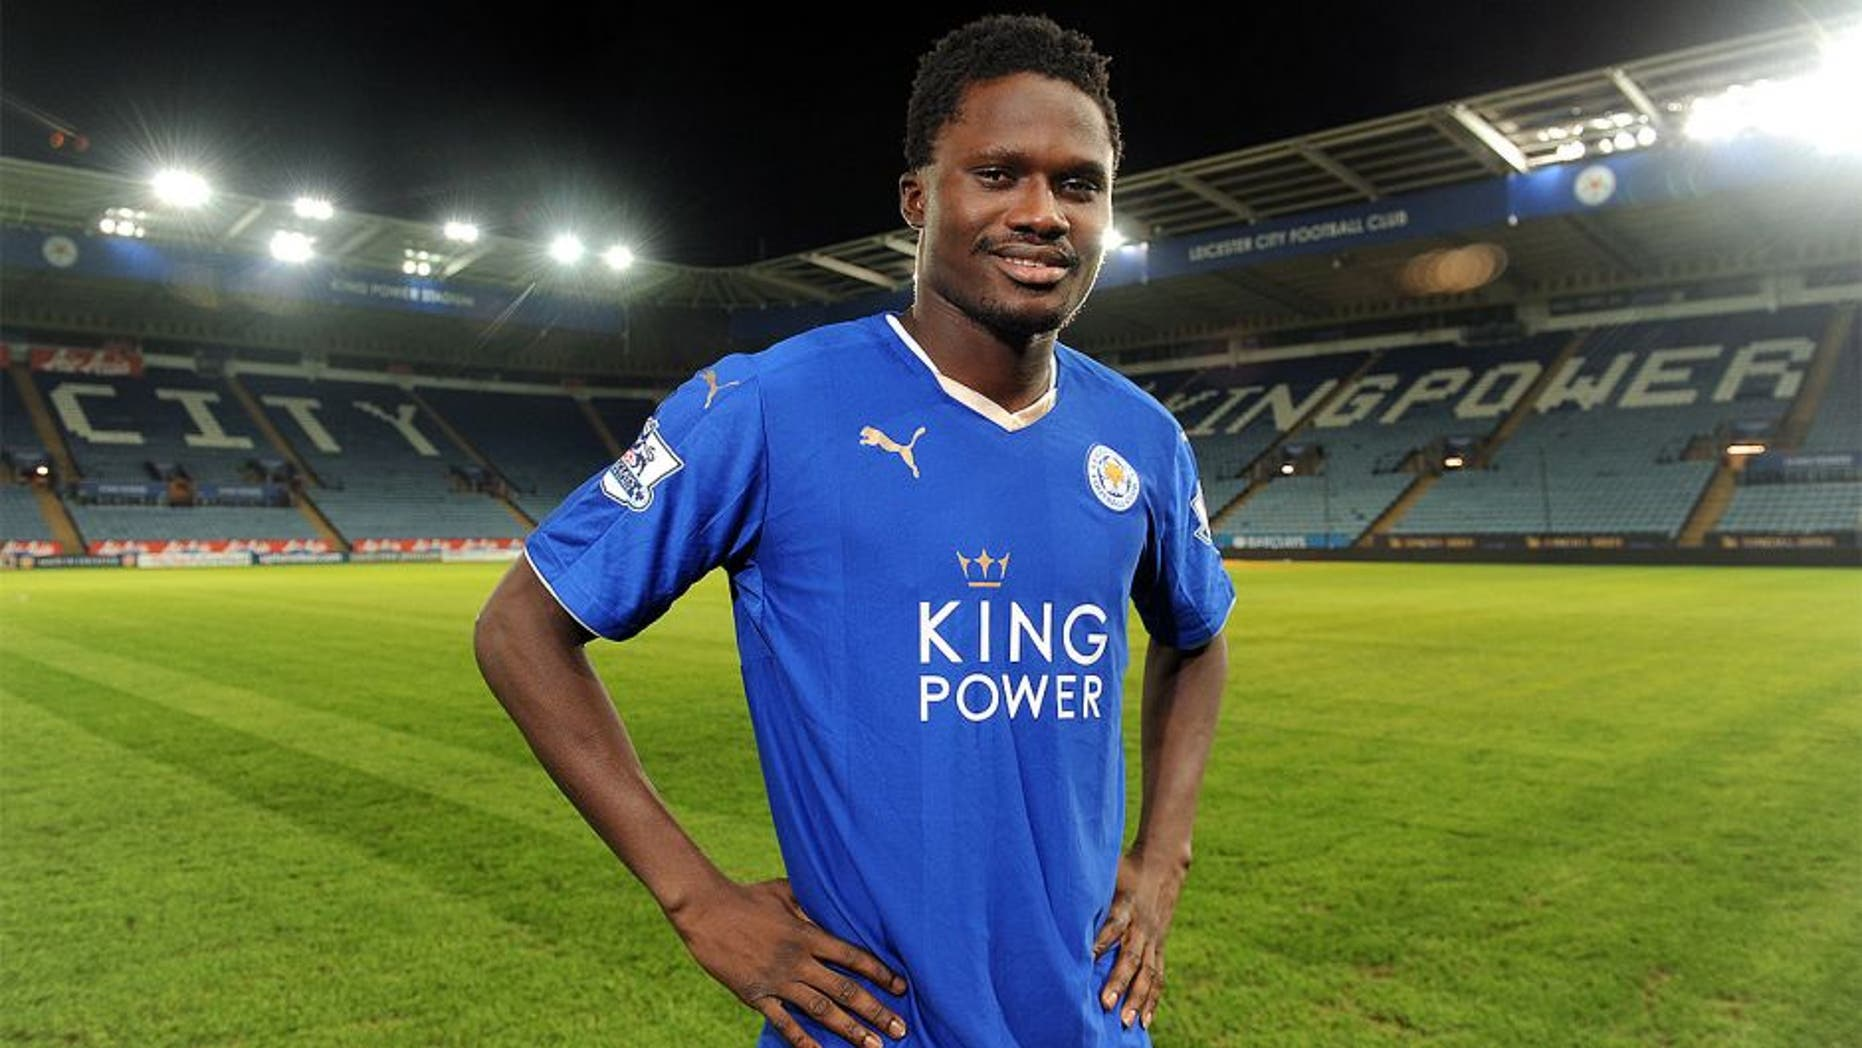 LEICESTER, ENGLAND - JANUARY 21: Leicester City unveil New Signing Daniel Amartey at King Power Stadium on January 21, 2016 in Leicester, United Kingdom. (Photo by Plumb Images/Leicester City FC via Getty Images)